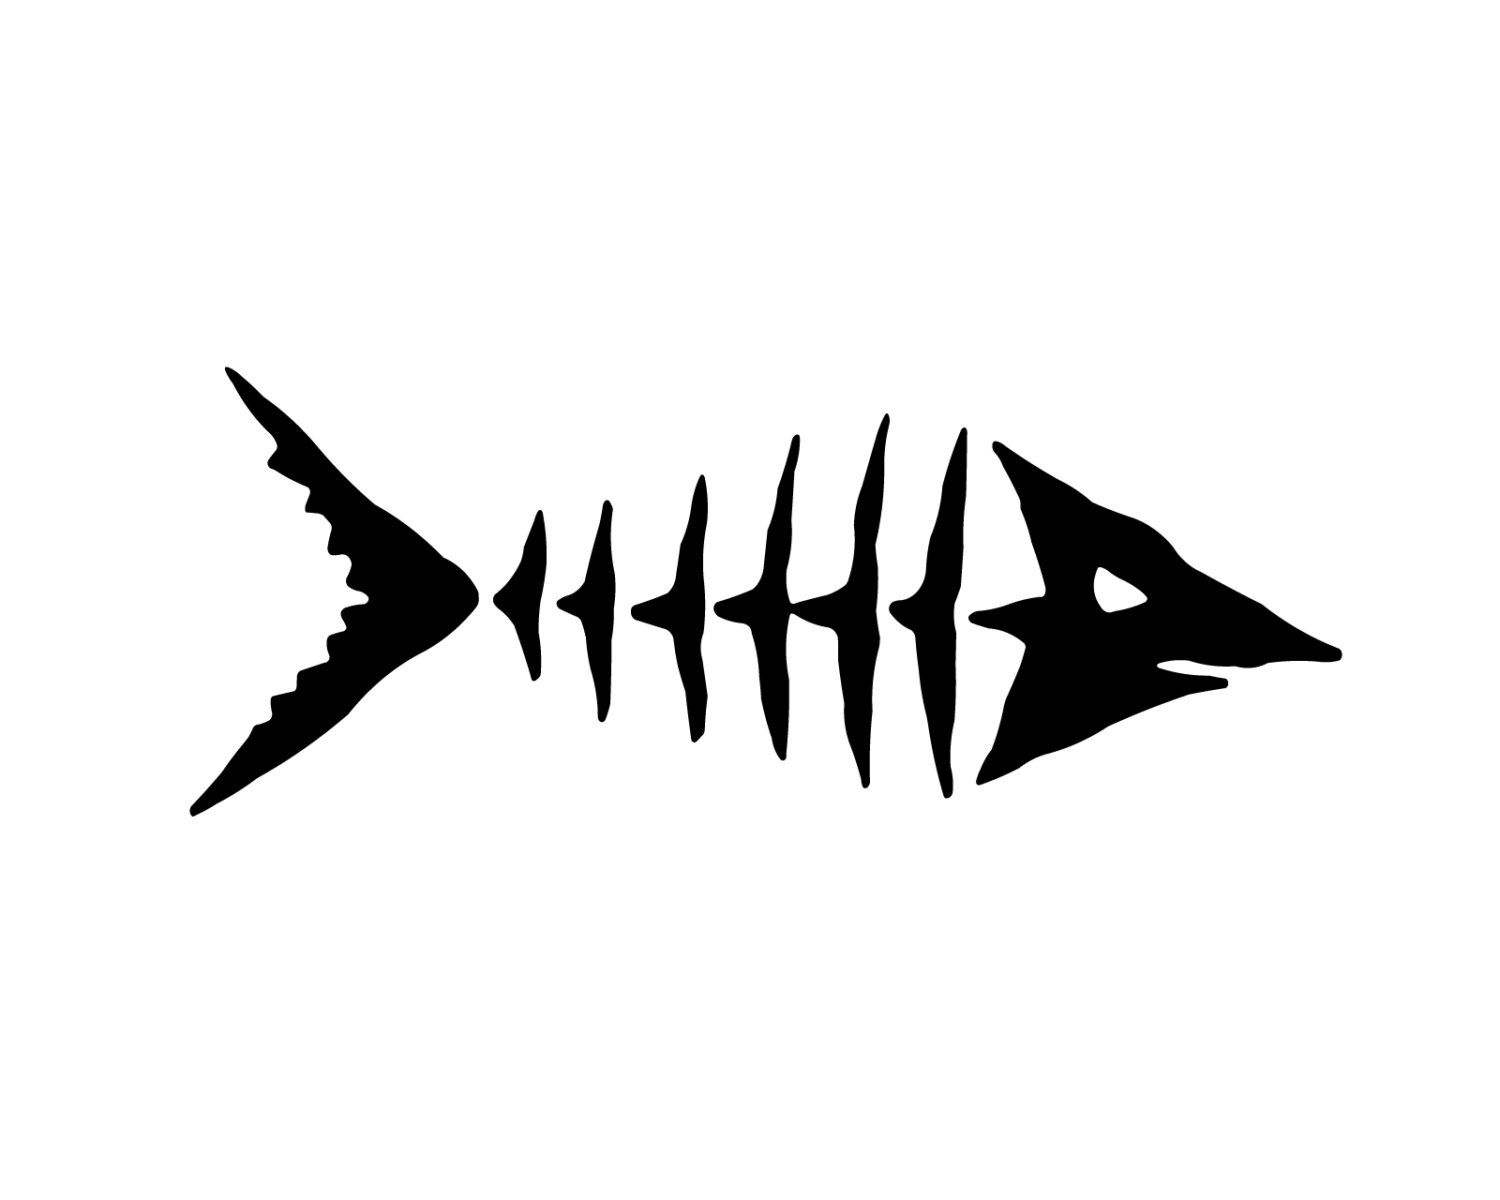 Fish skeleton decal fishing decal by stickermaniadecals on for Free fishing decals